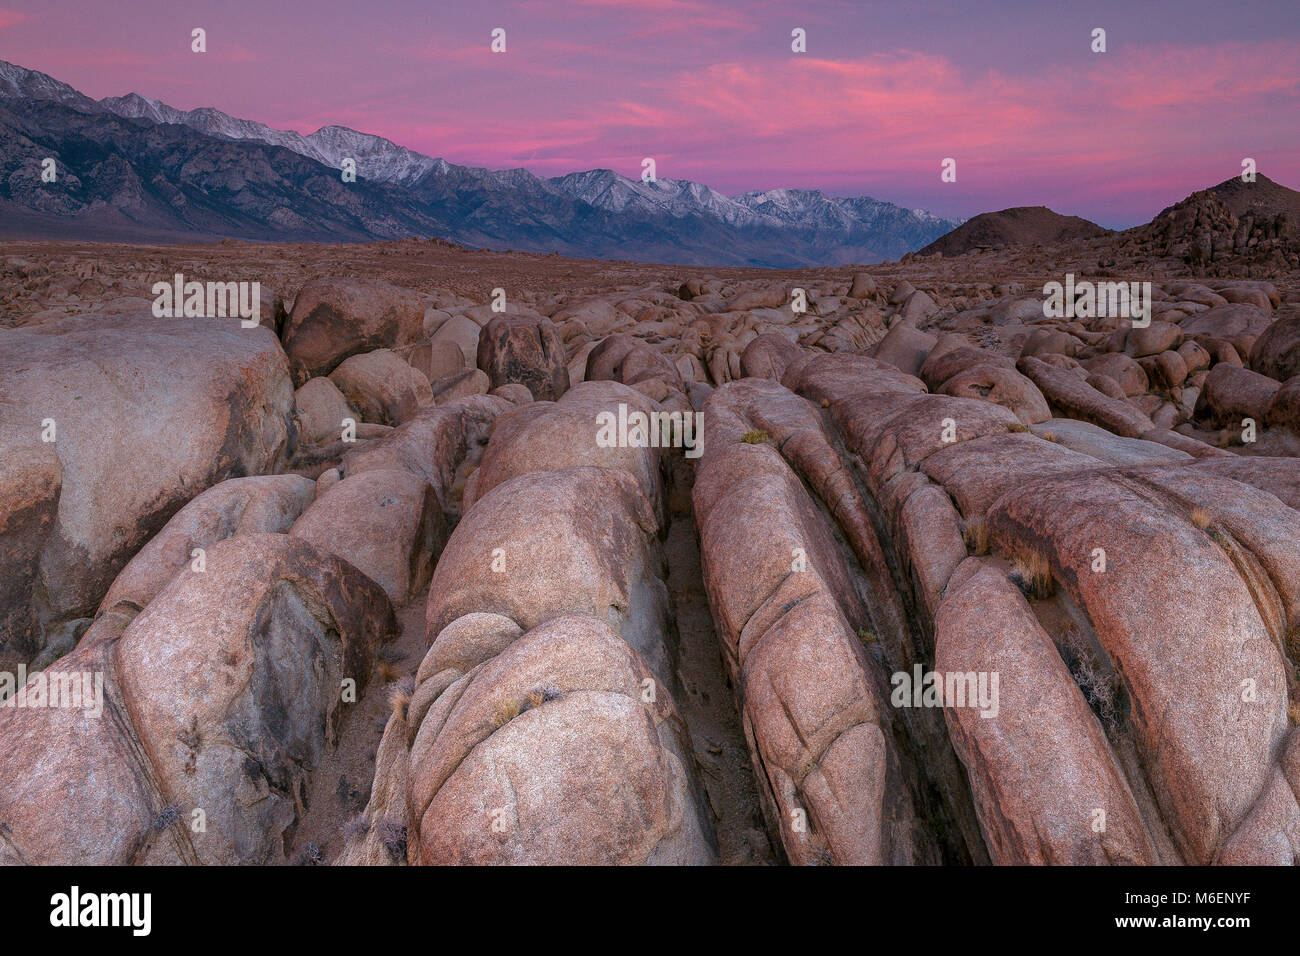 Dawn, Alabama Hills, Eastern Sierra, Inyo National Forest, California - Stock Image